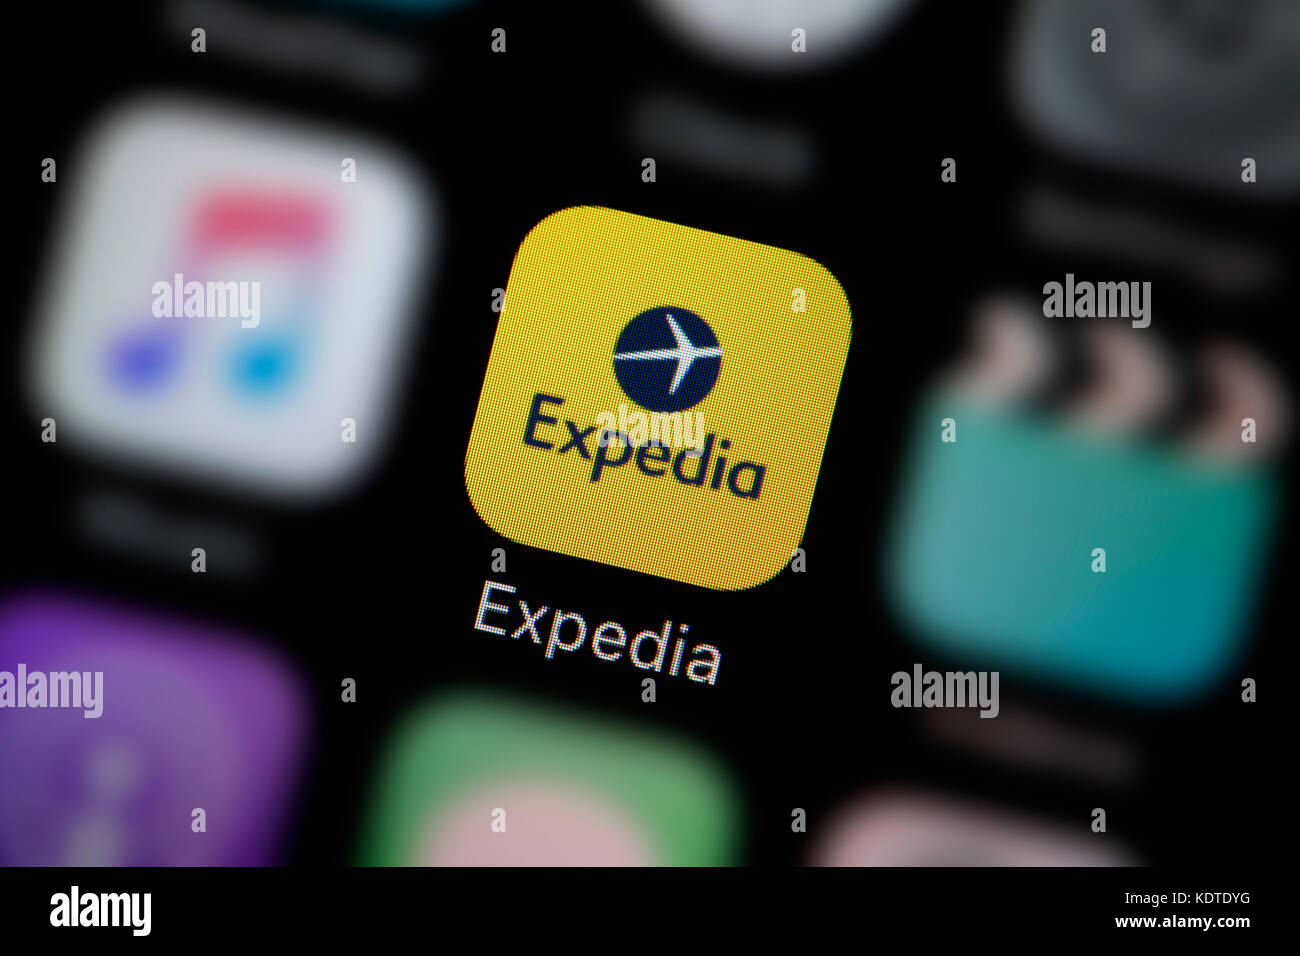 A Close Up Shot Of The Logo Representing Expedia App Icon As Seen On Screen Smart Phone Editorial Use Only